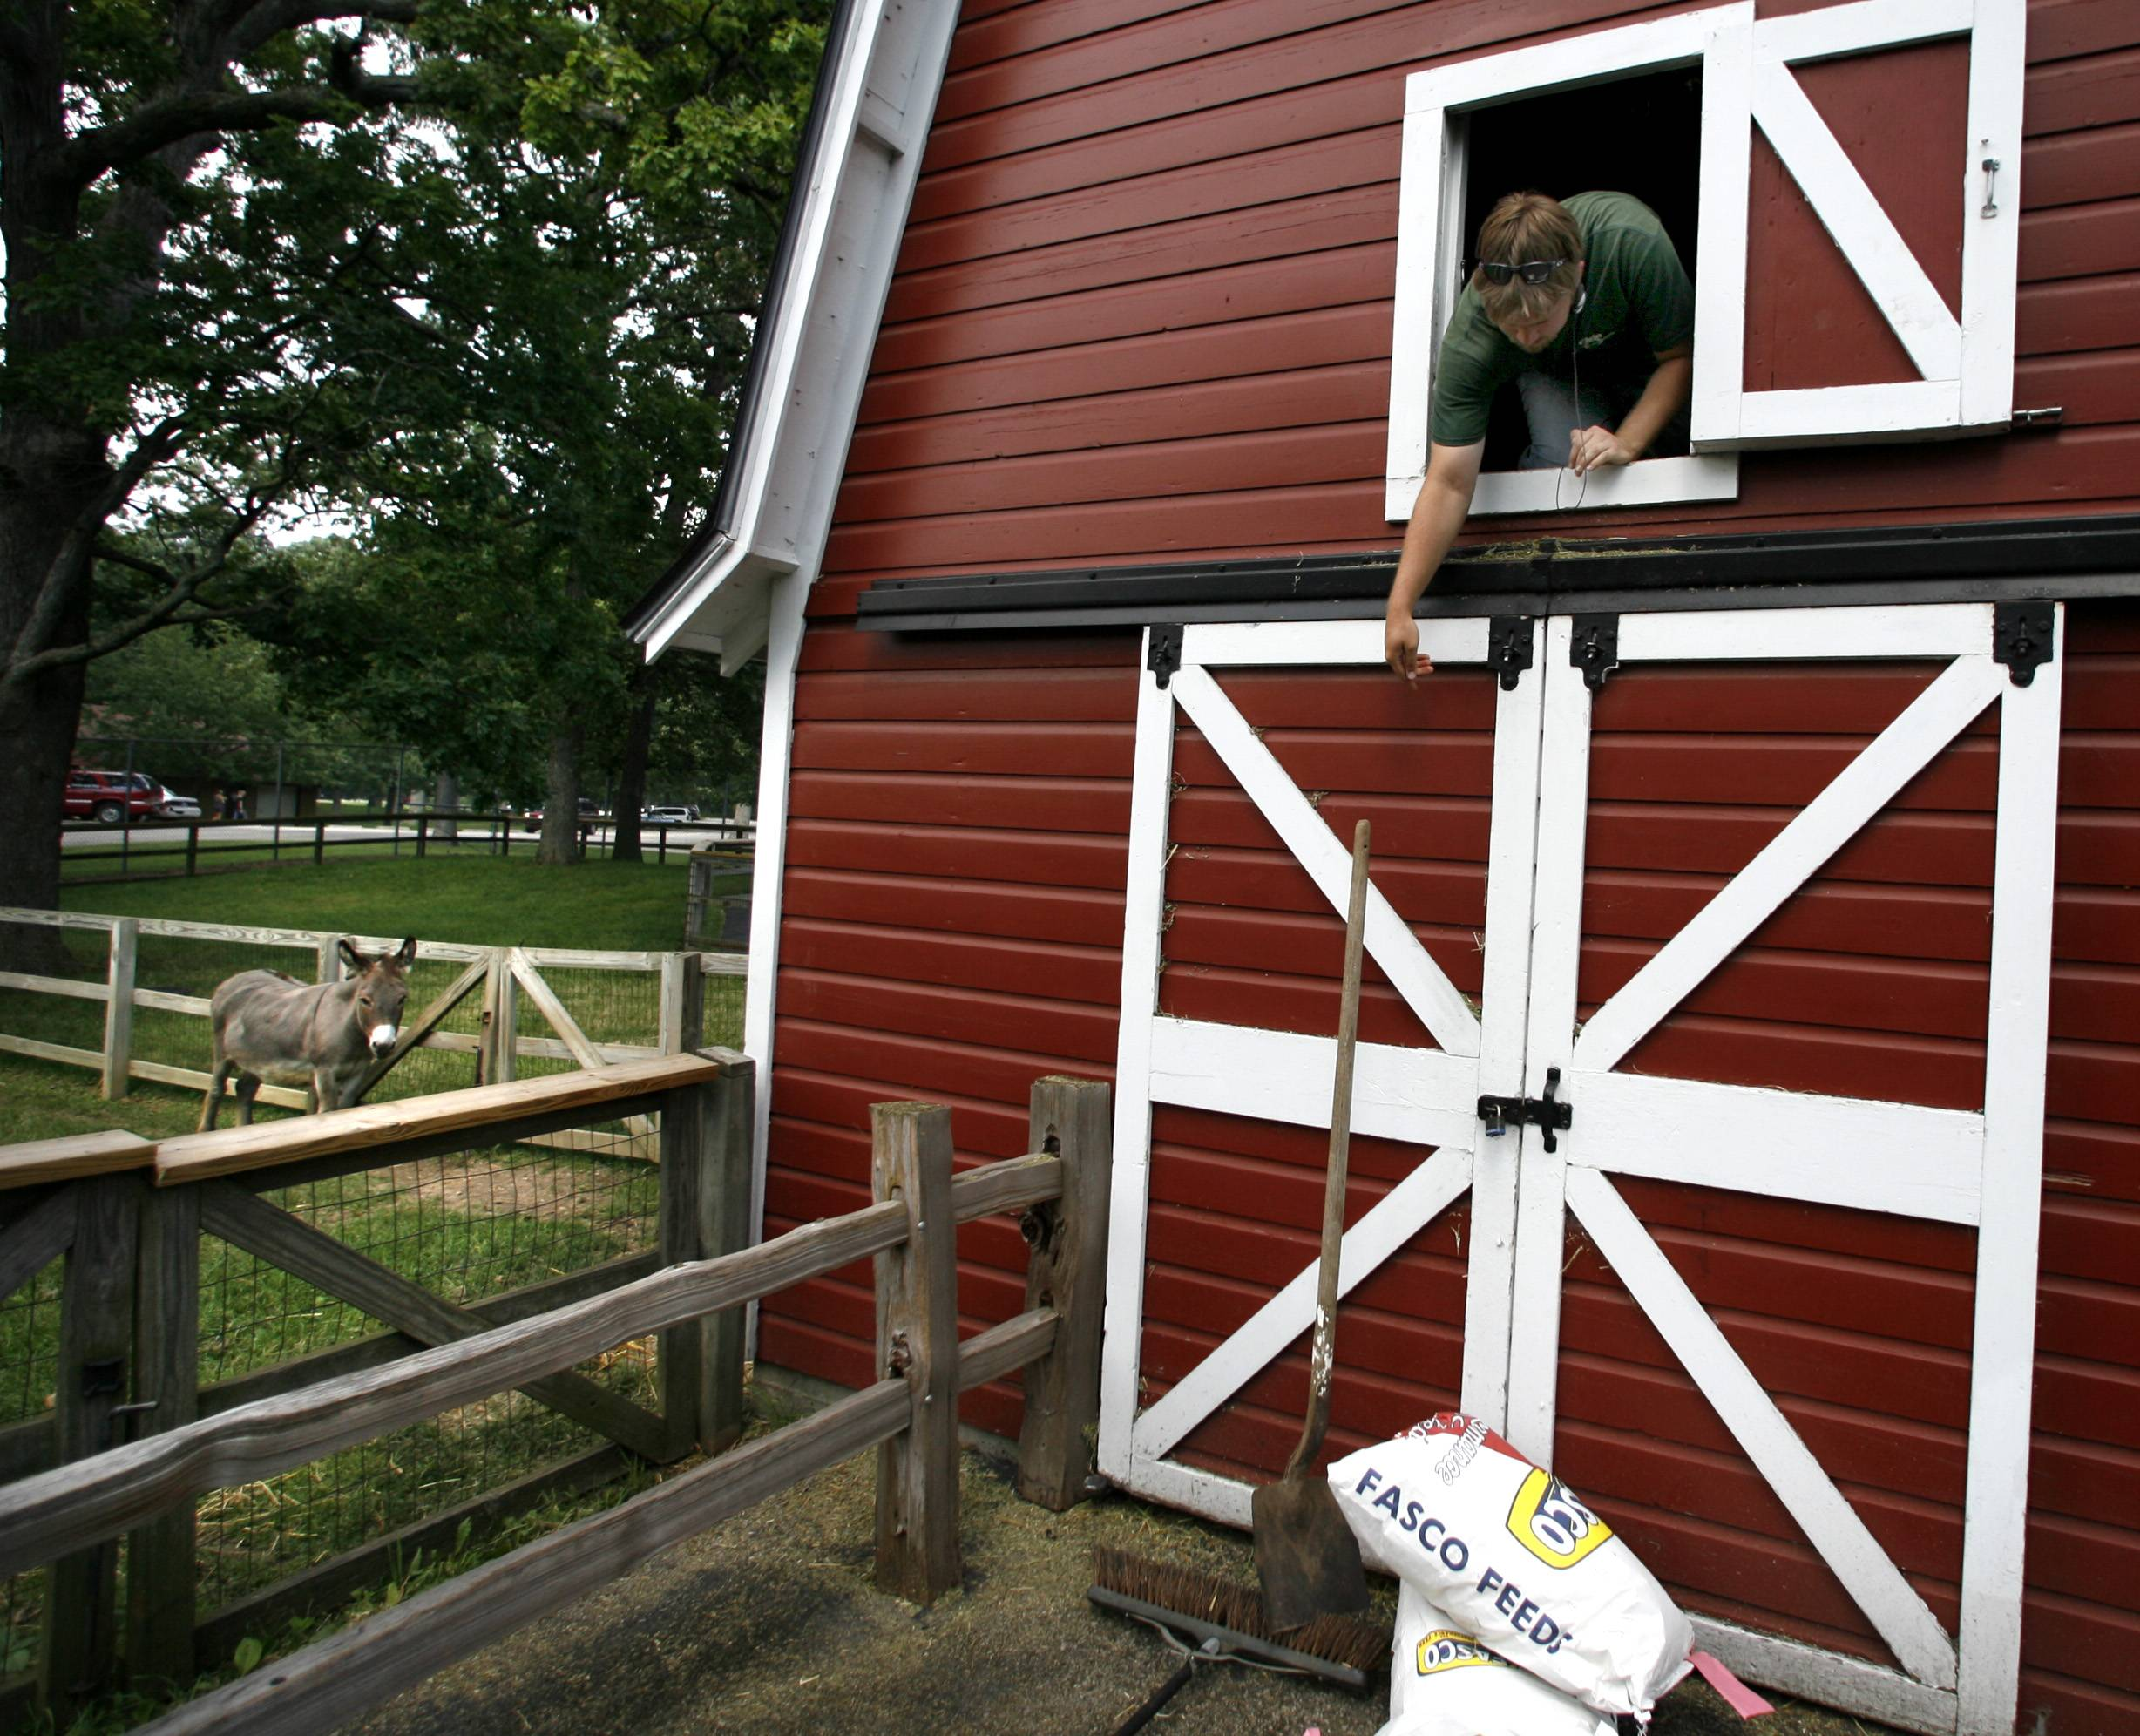 People will be able this summer to visit farm animals at Lords Park Zoo in Elgin for the first time in five years. In this 2008 photo, Rich Wicklein of Elgin drops a shovel he used to clean out a barn at the zoo.